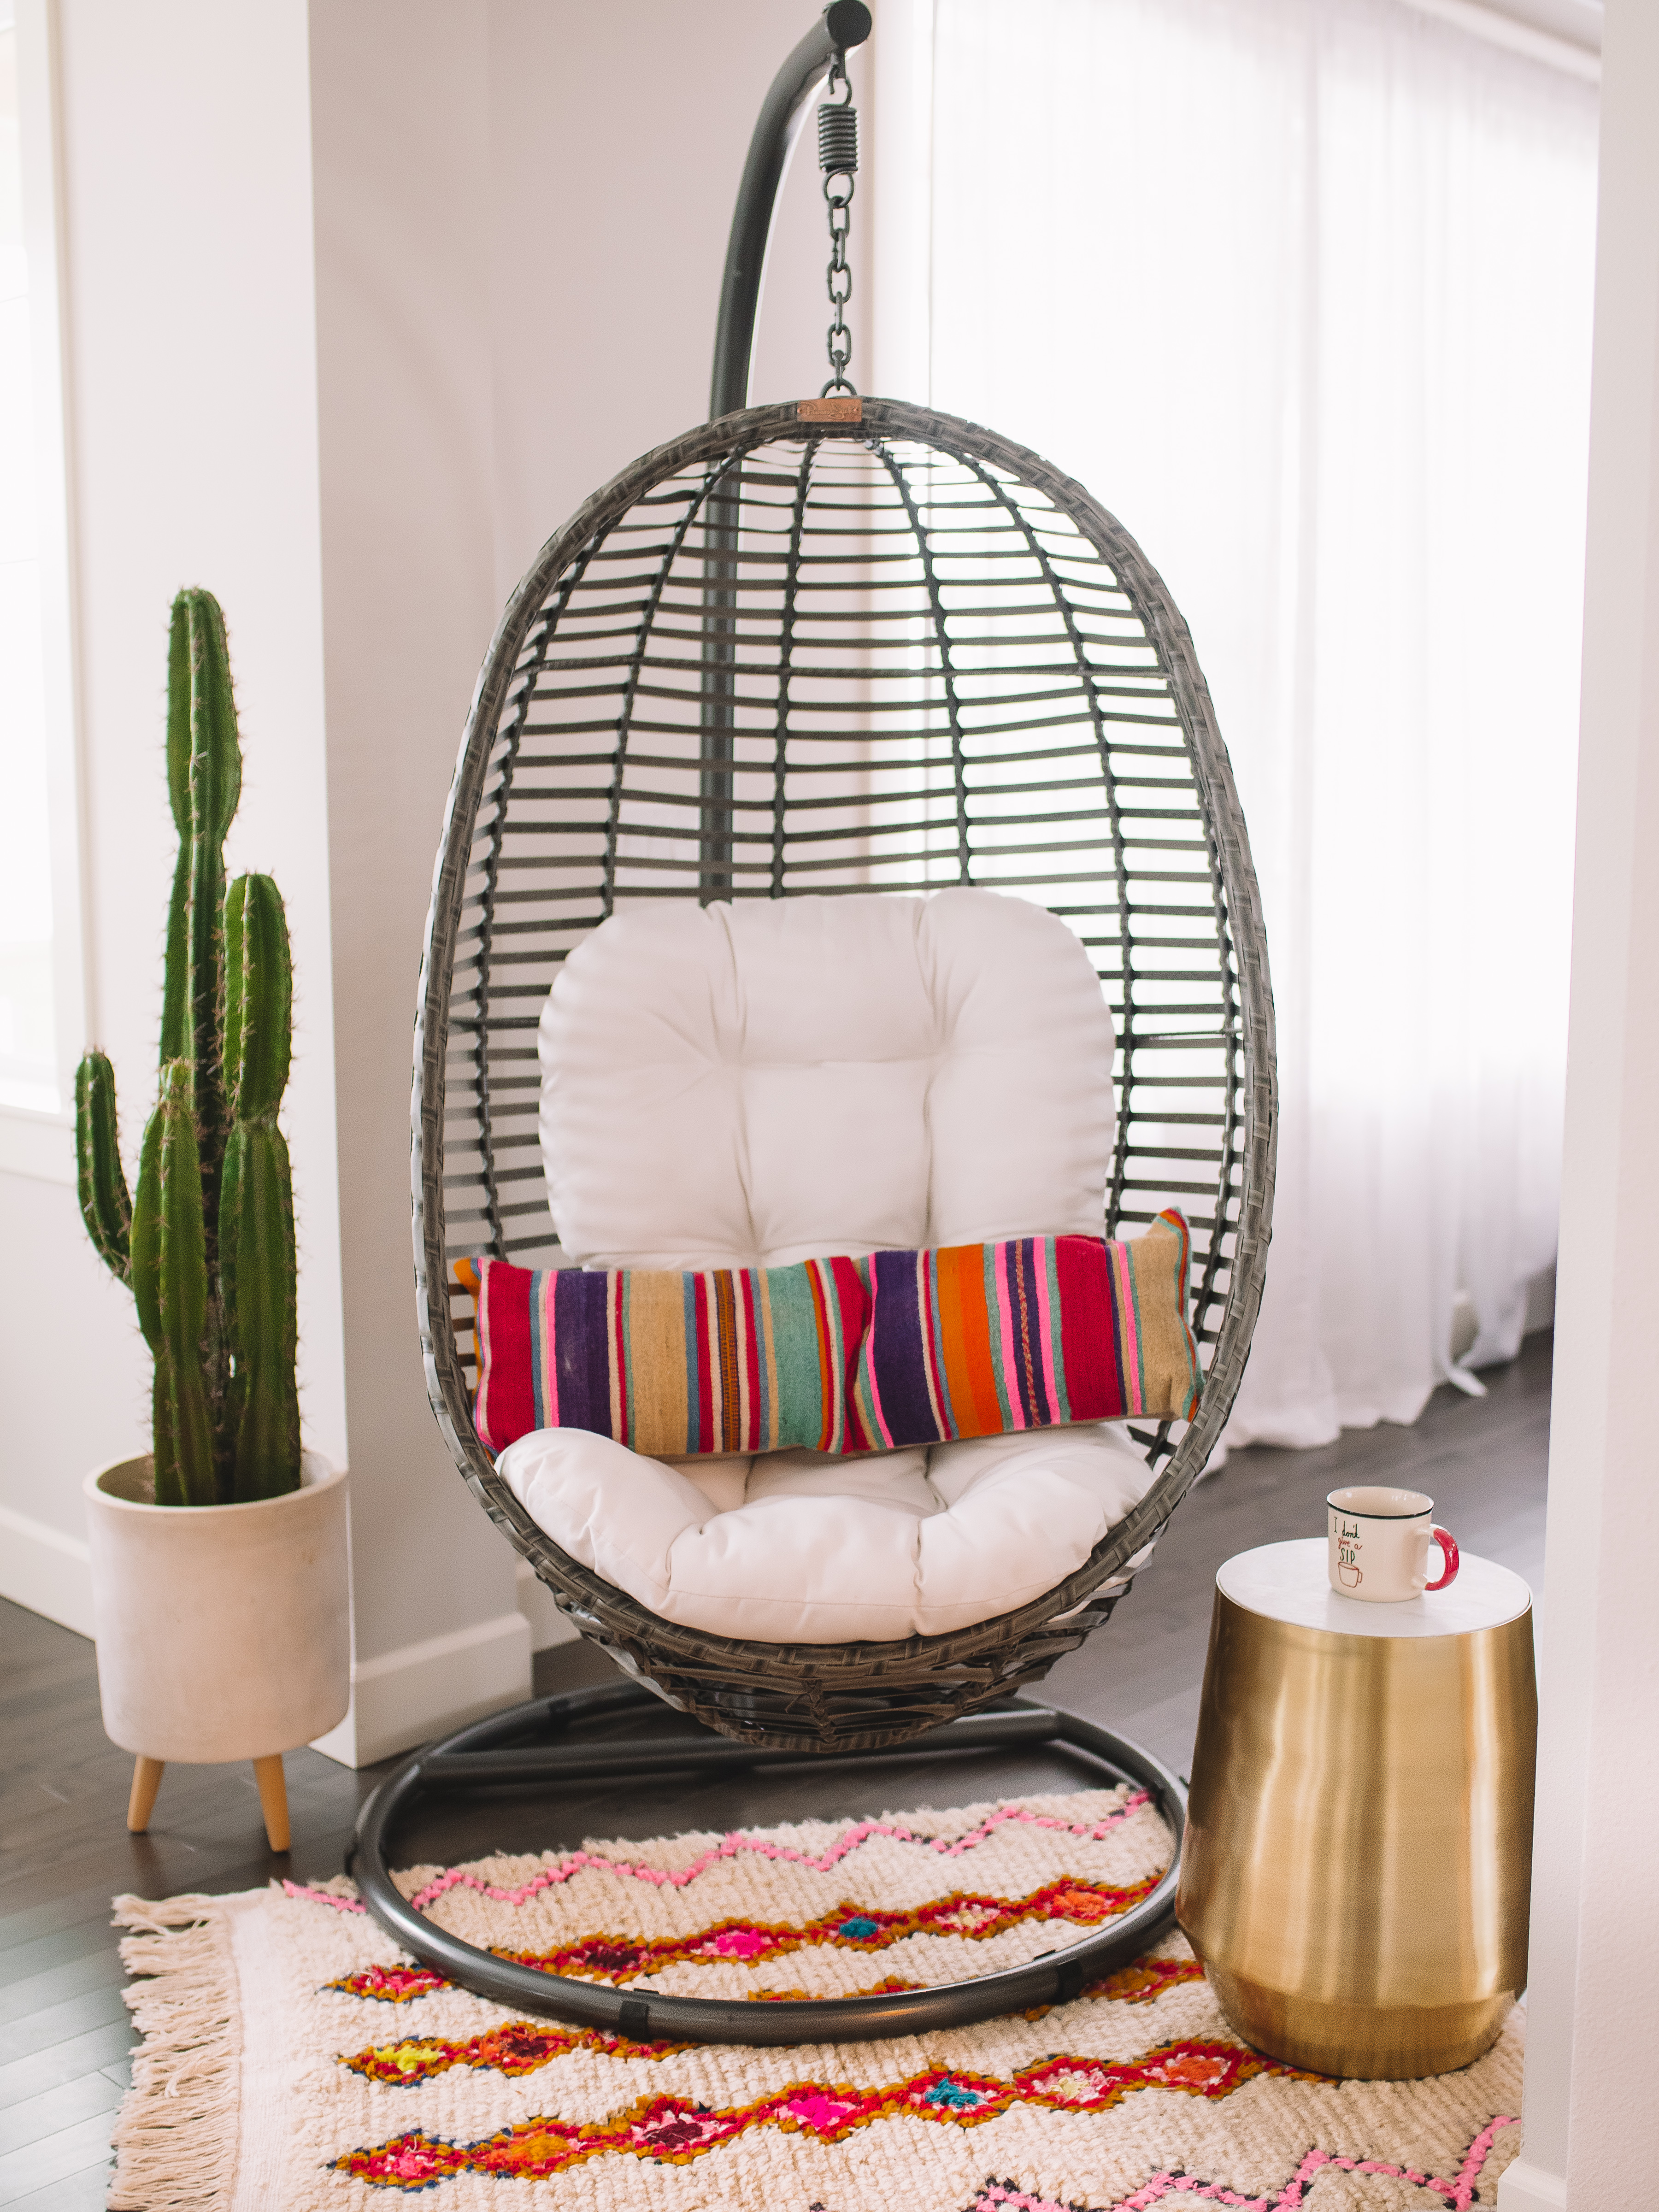 Home Design Ideas Youtube: Swing Chair With Stand Home Decor Ideas GypsyTan Home